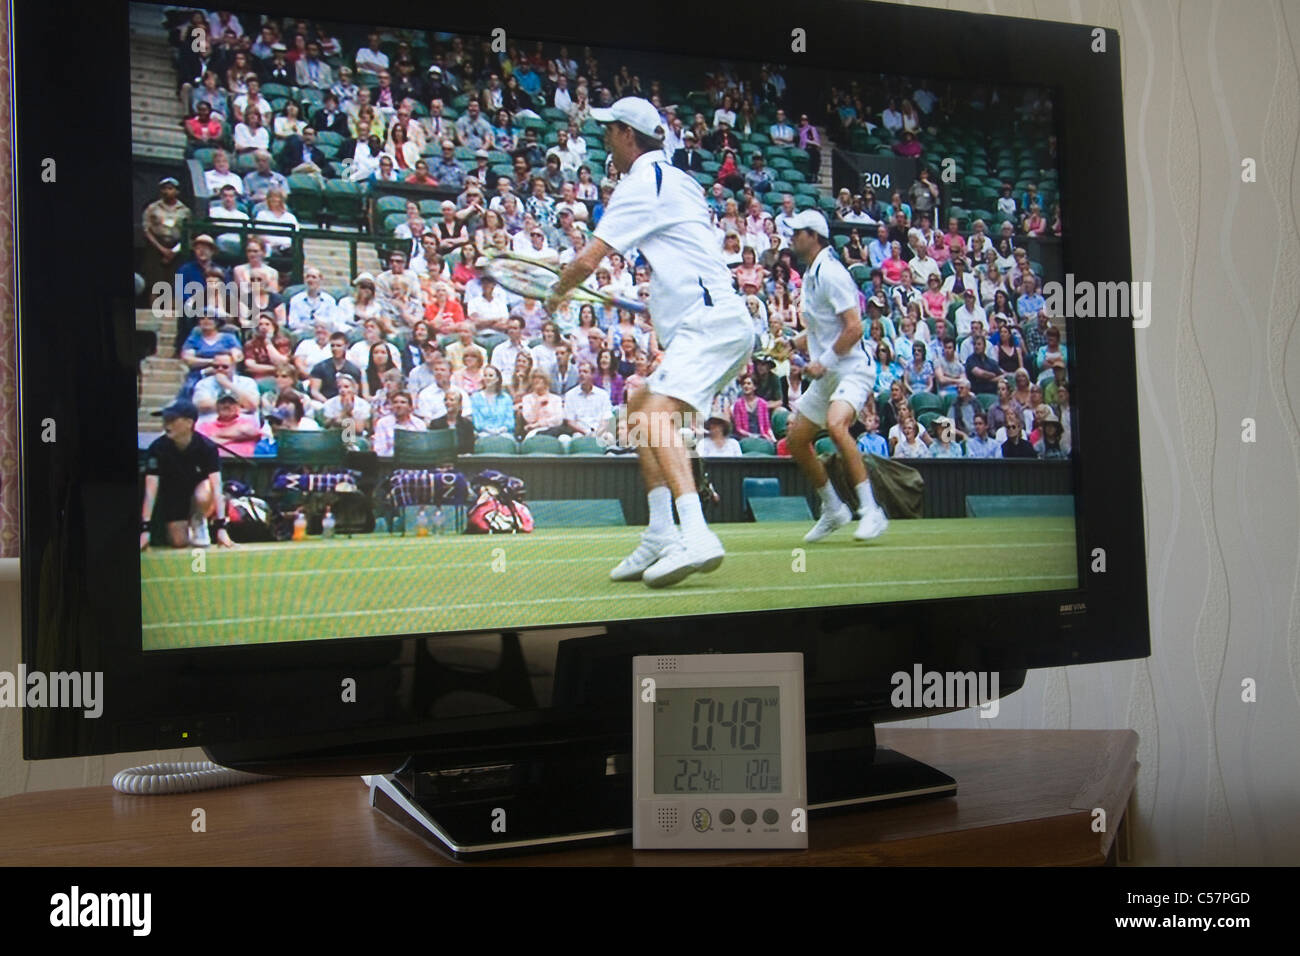 Owl electricity power usage monitor in front of a flat screen television set showing Wimbledon doubles tennis final - Stock Image